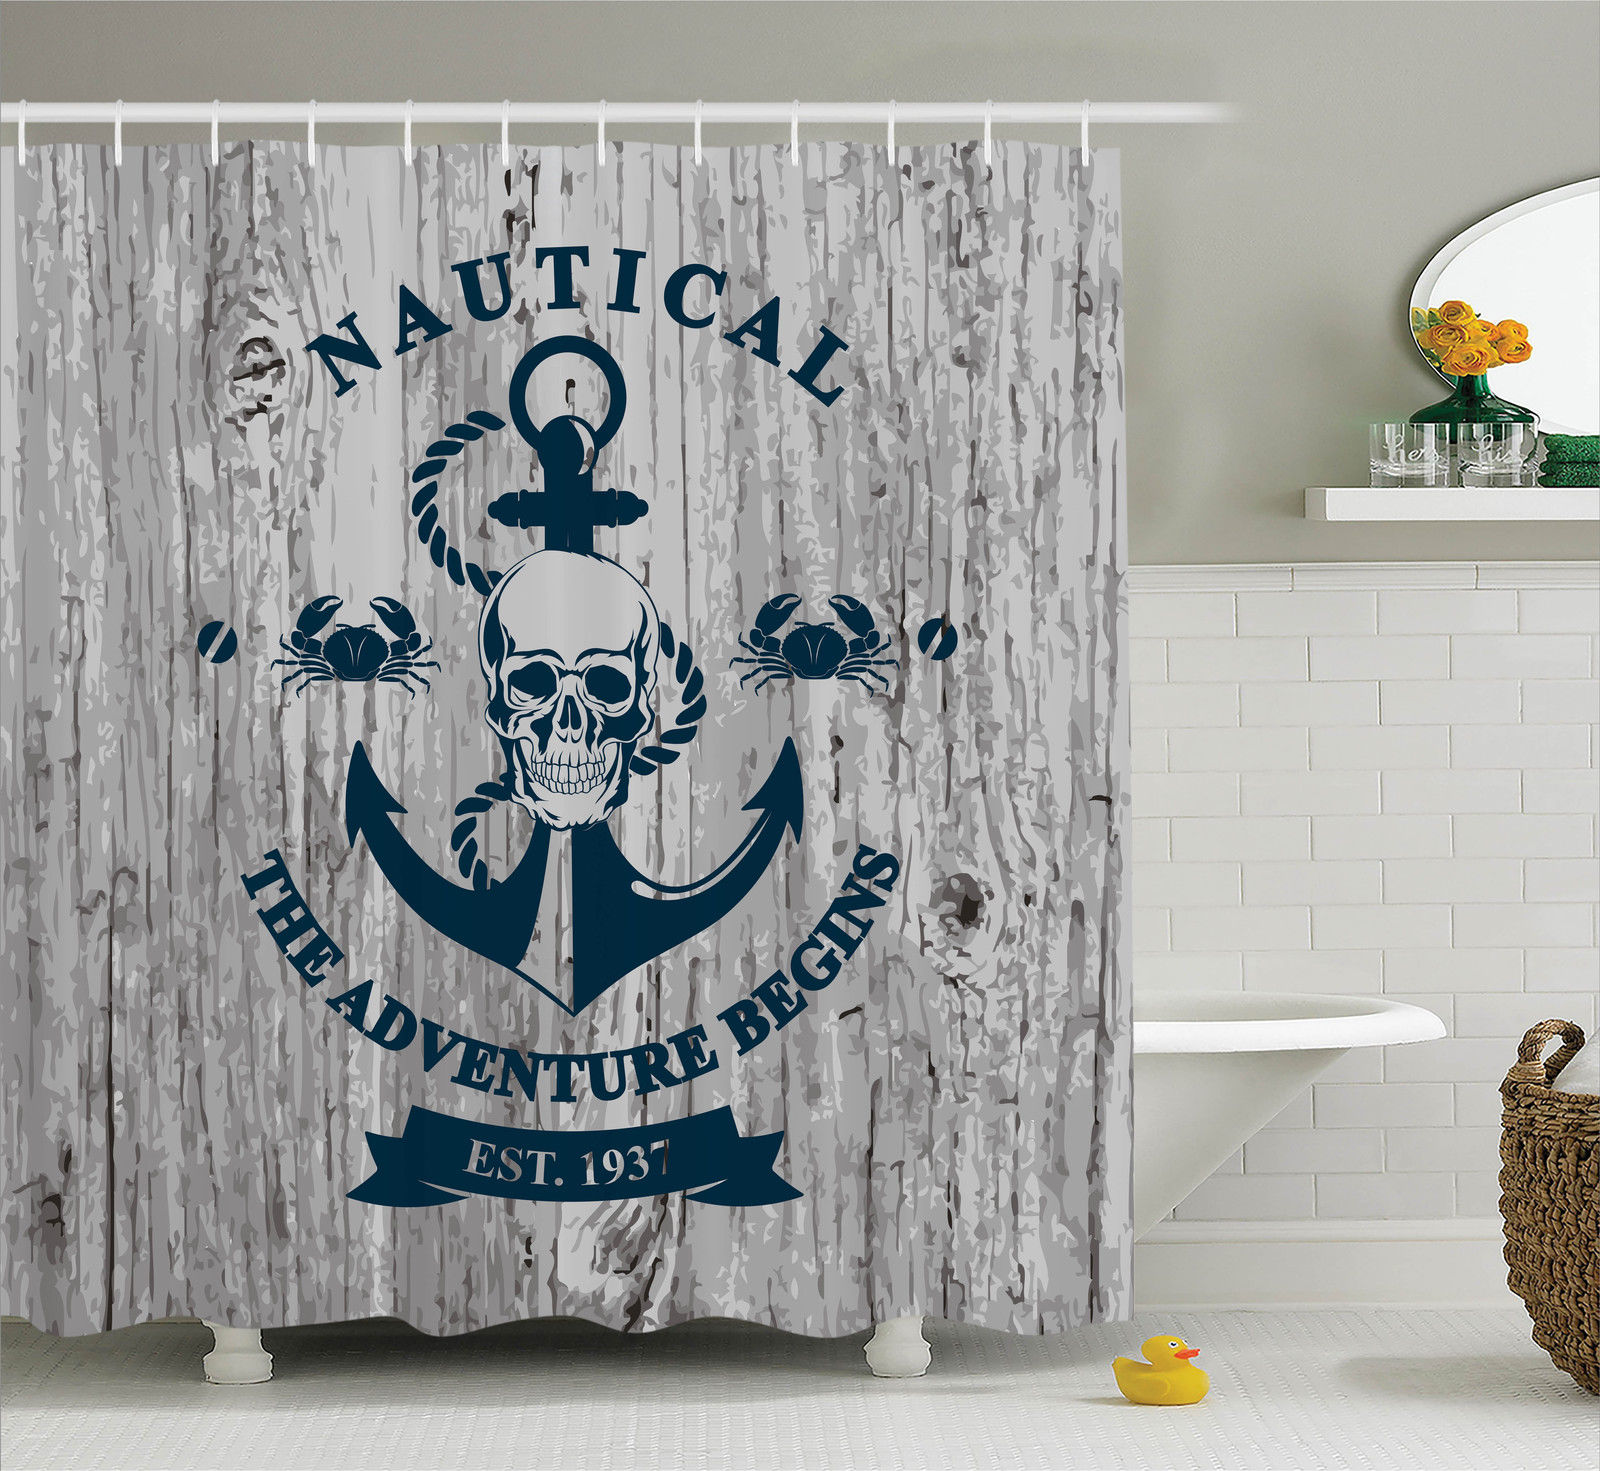 "Anchor Decor Shower Curtain Set, Art With Anchor Skull Rope ""Nautical The Adventure Begins"" Message Historic, Bathroom Accessories, 69W X 70L Inches, By Ambesonne"